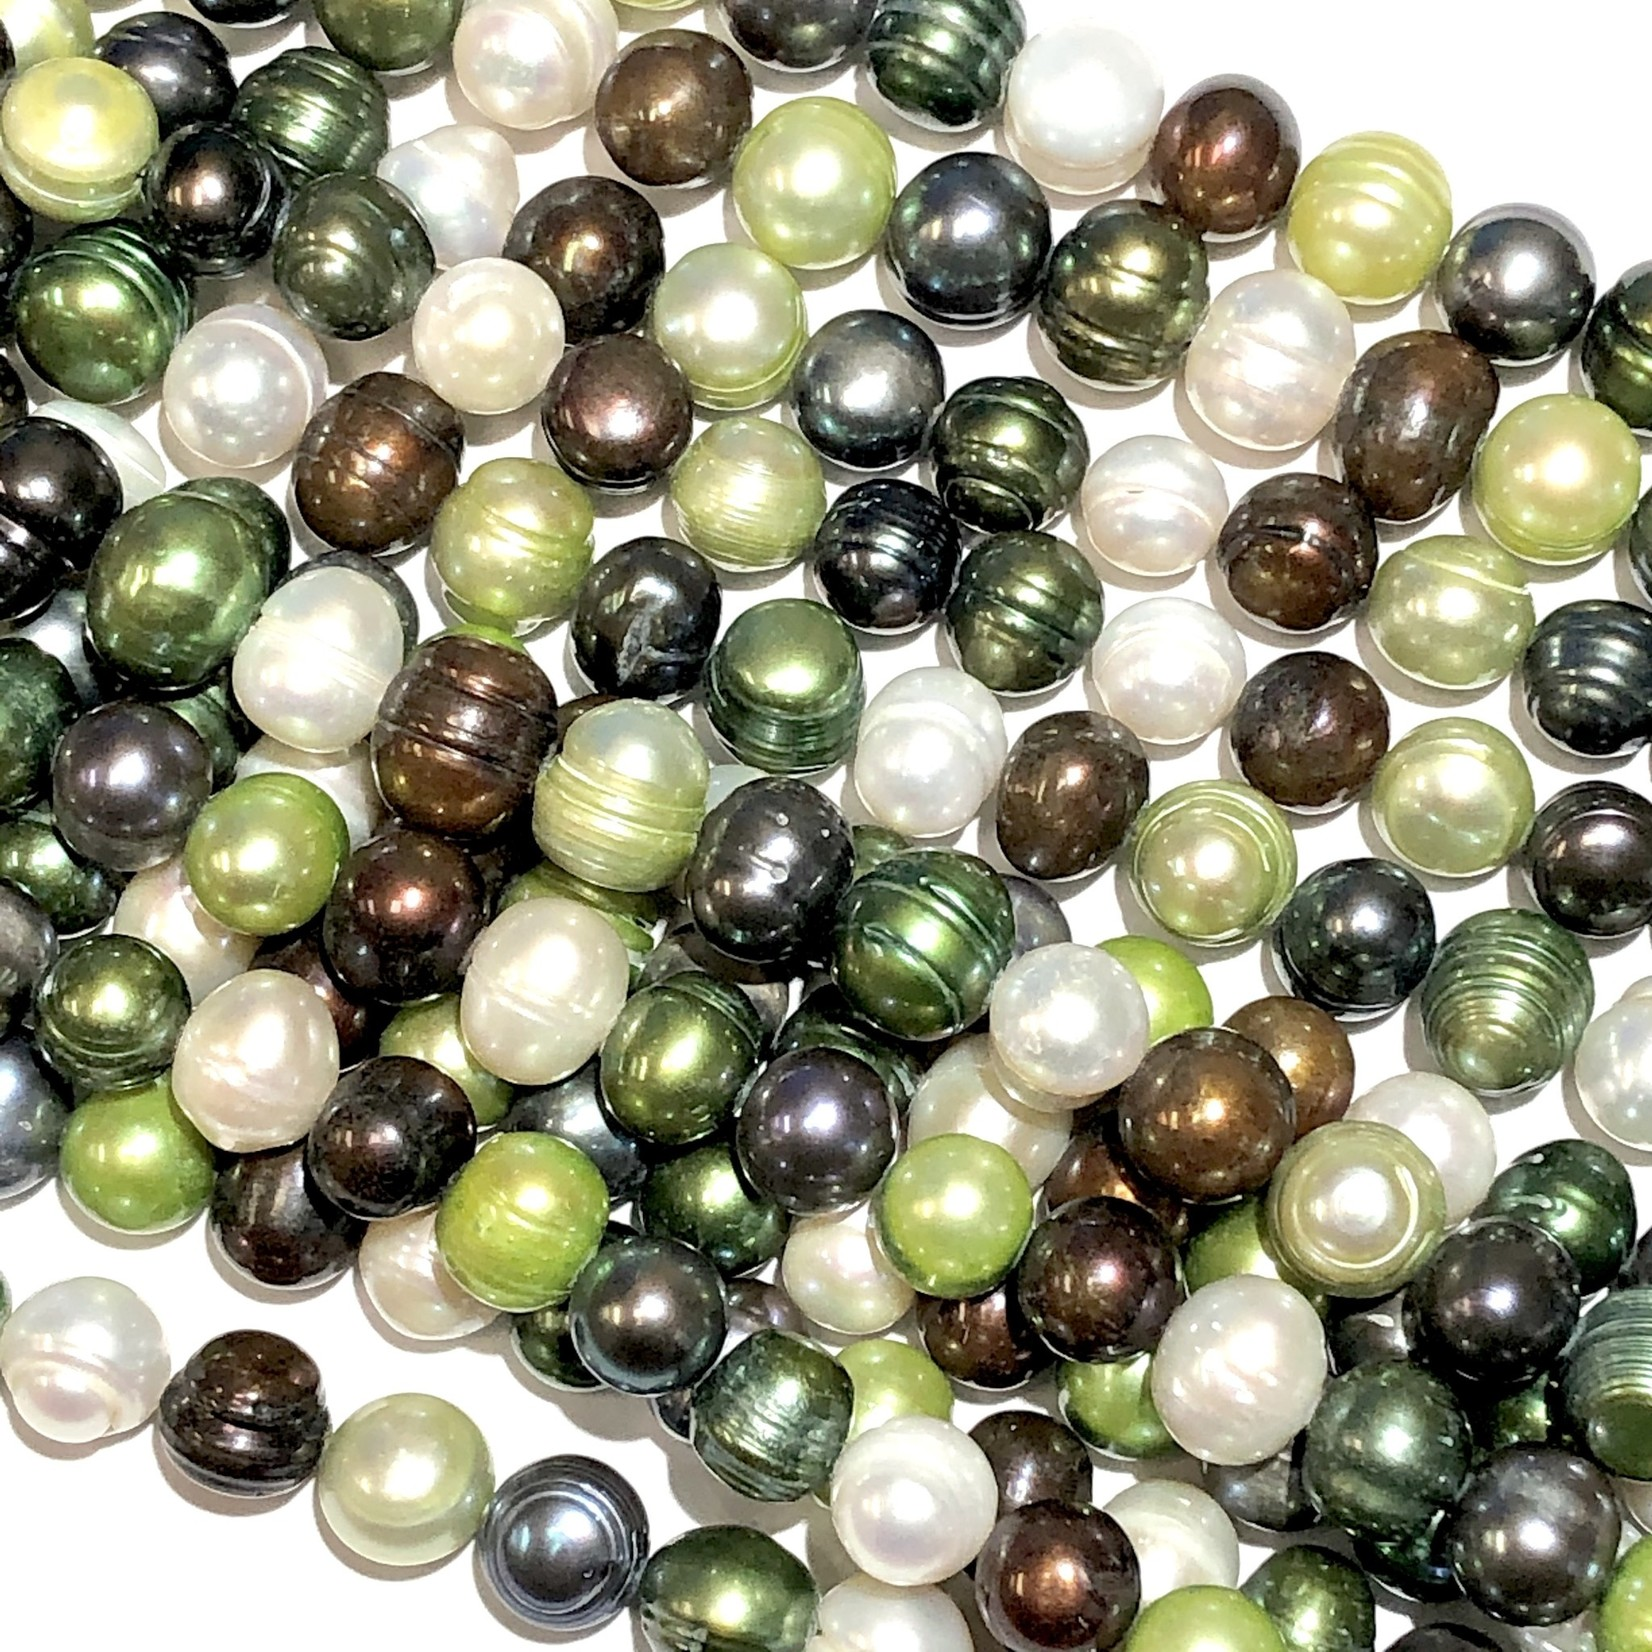 F/W PEARL Dyed Asst Colours 8x10mm Potato